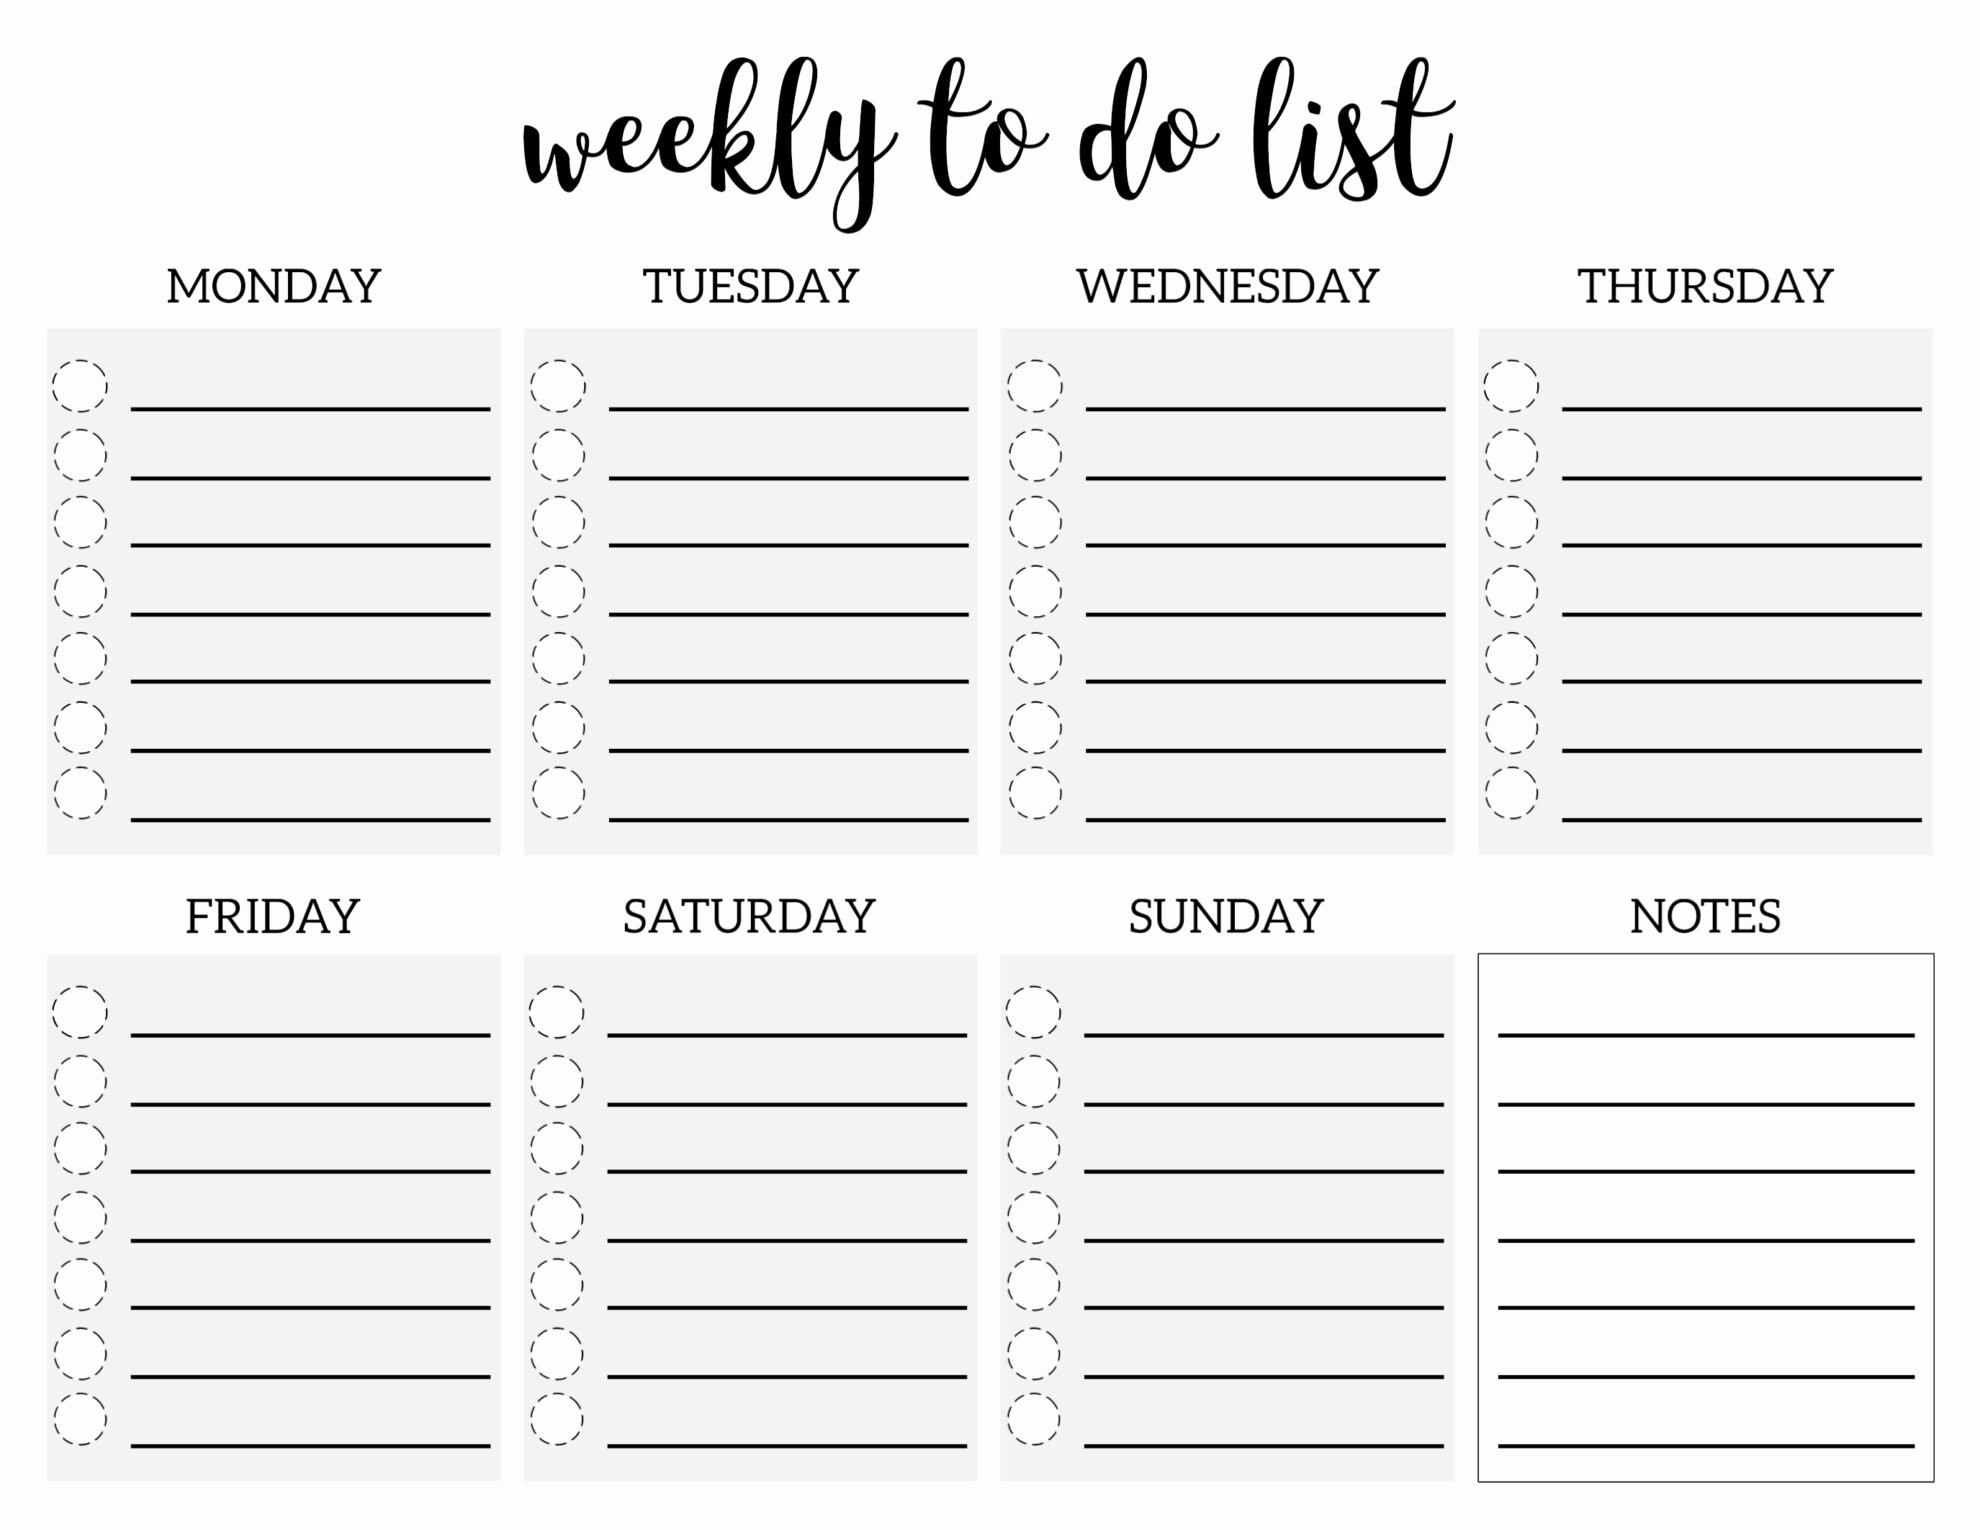 Weekly todo List Template Lovely Weekly to Do List Printable Checklist Template Paper